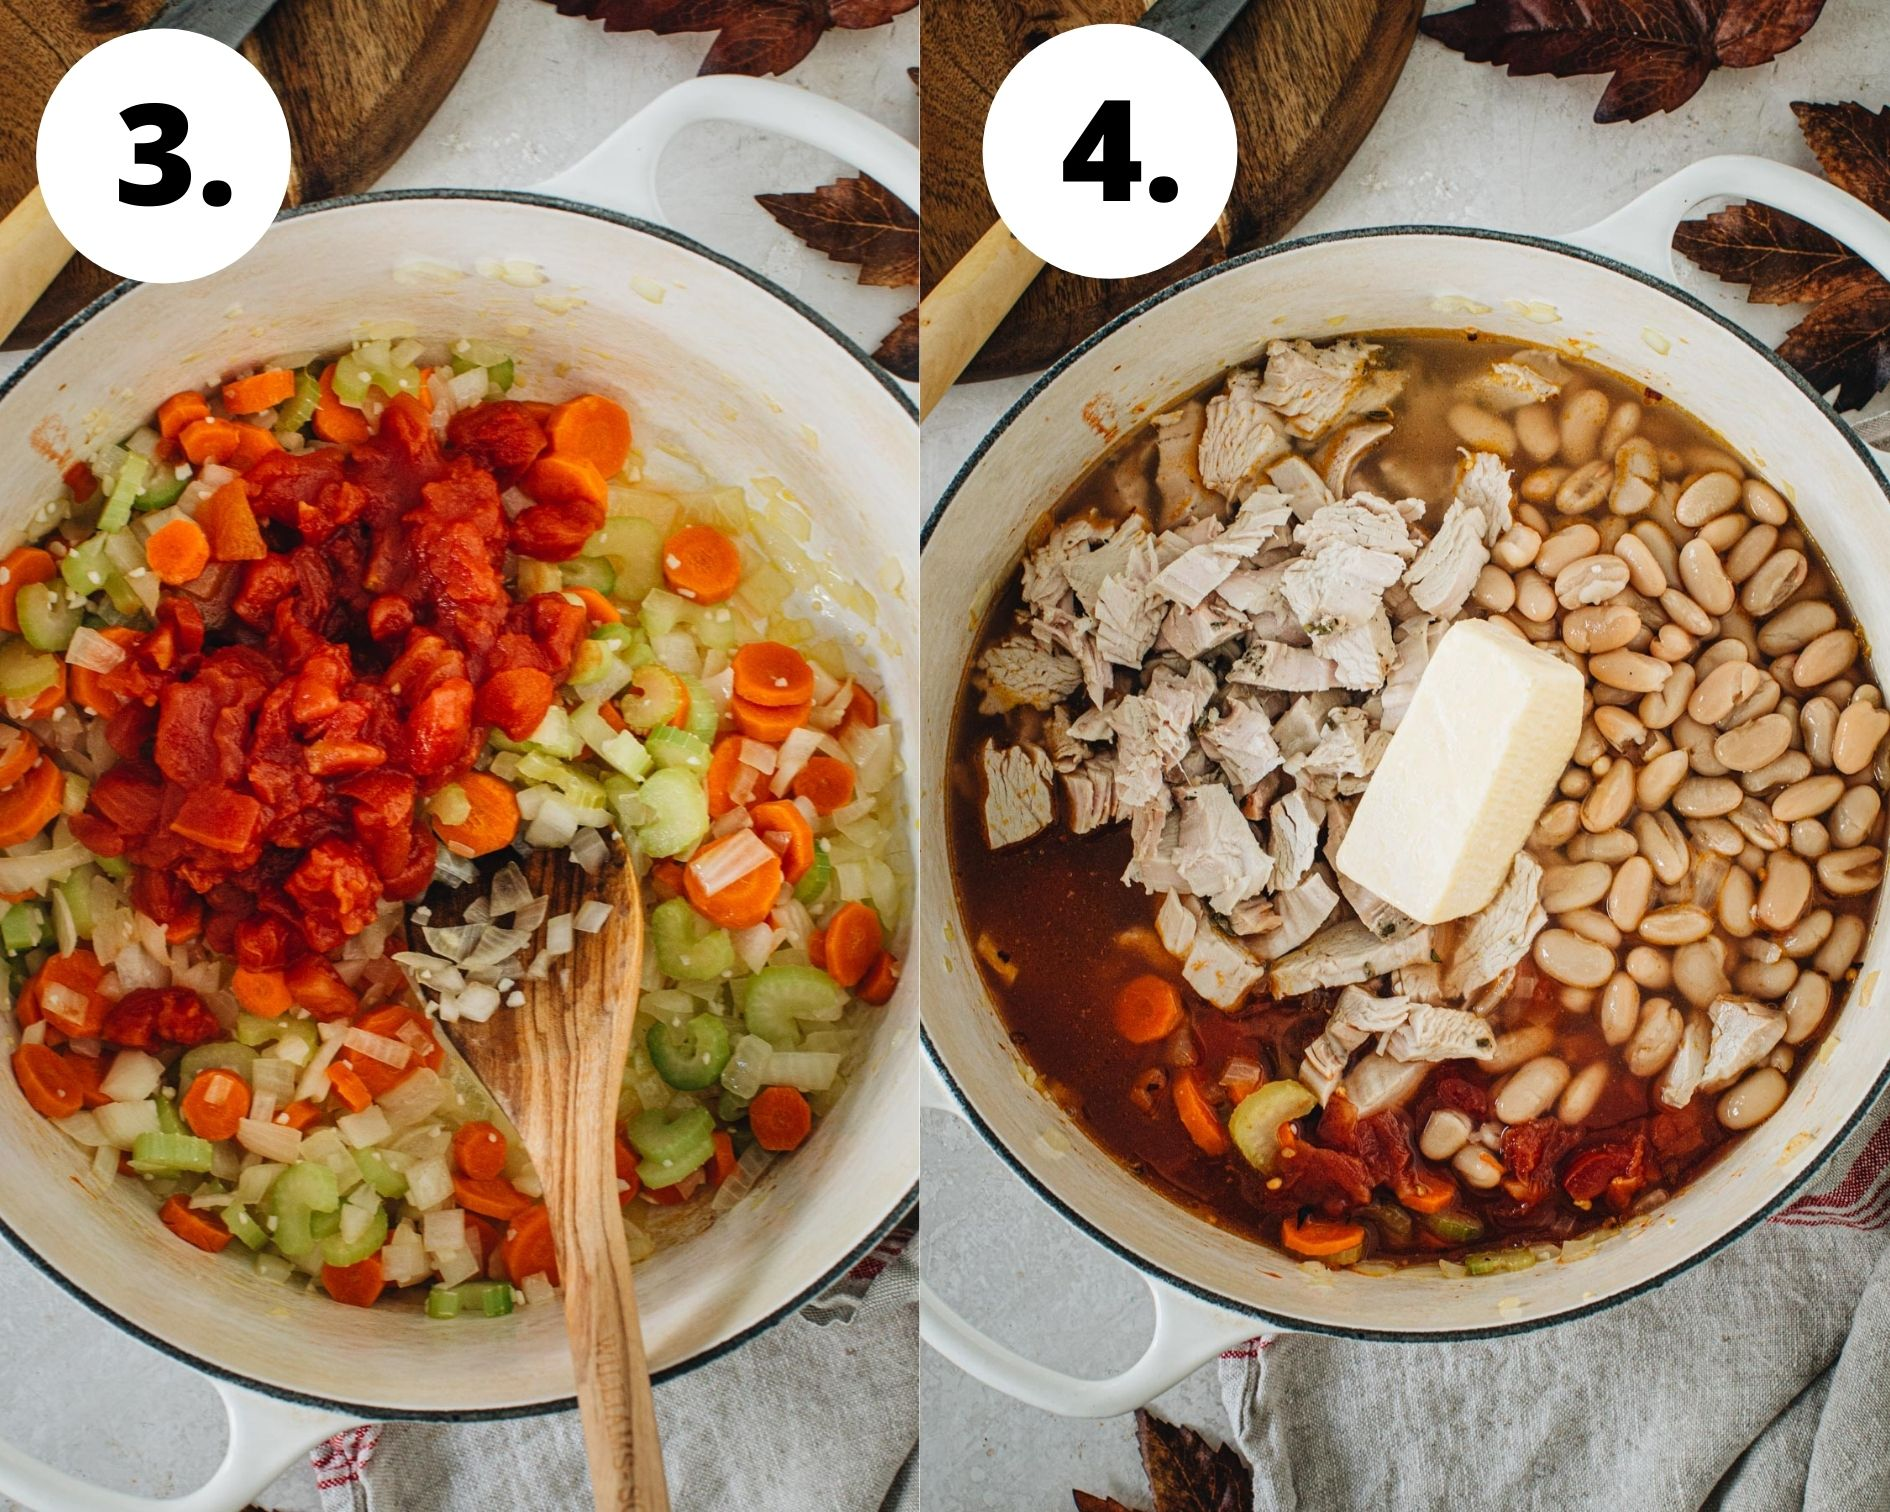 Tuscan white bean soup process steps 3 and 4.